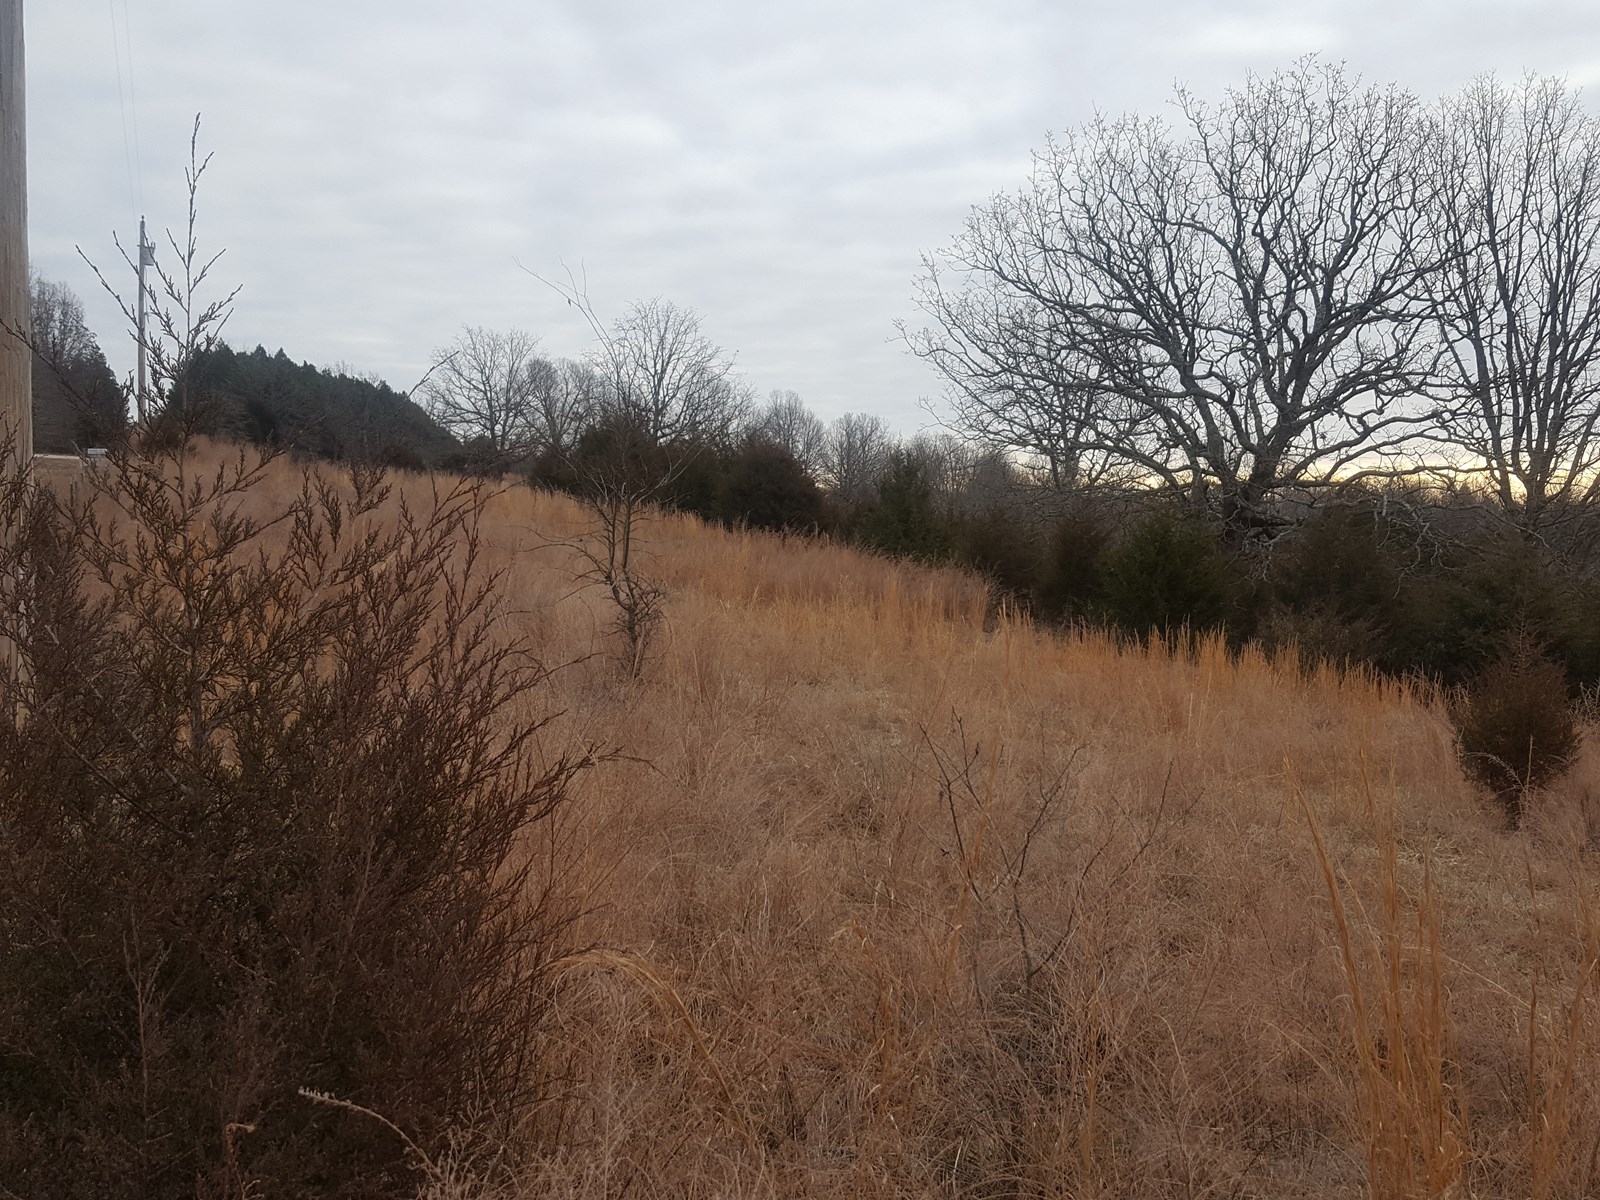 Vacant Land for Sale in South Central Missouri Ozarks